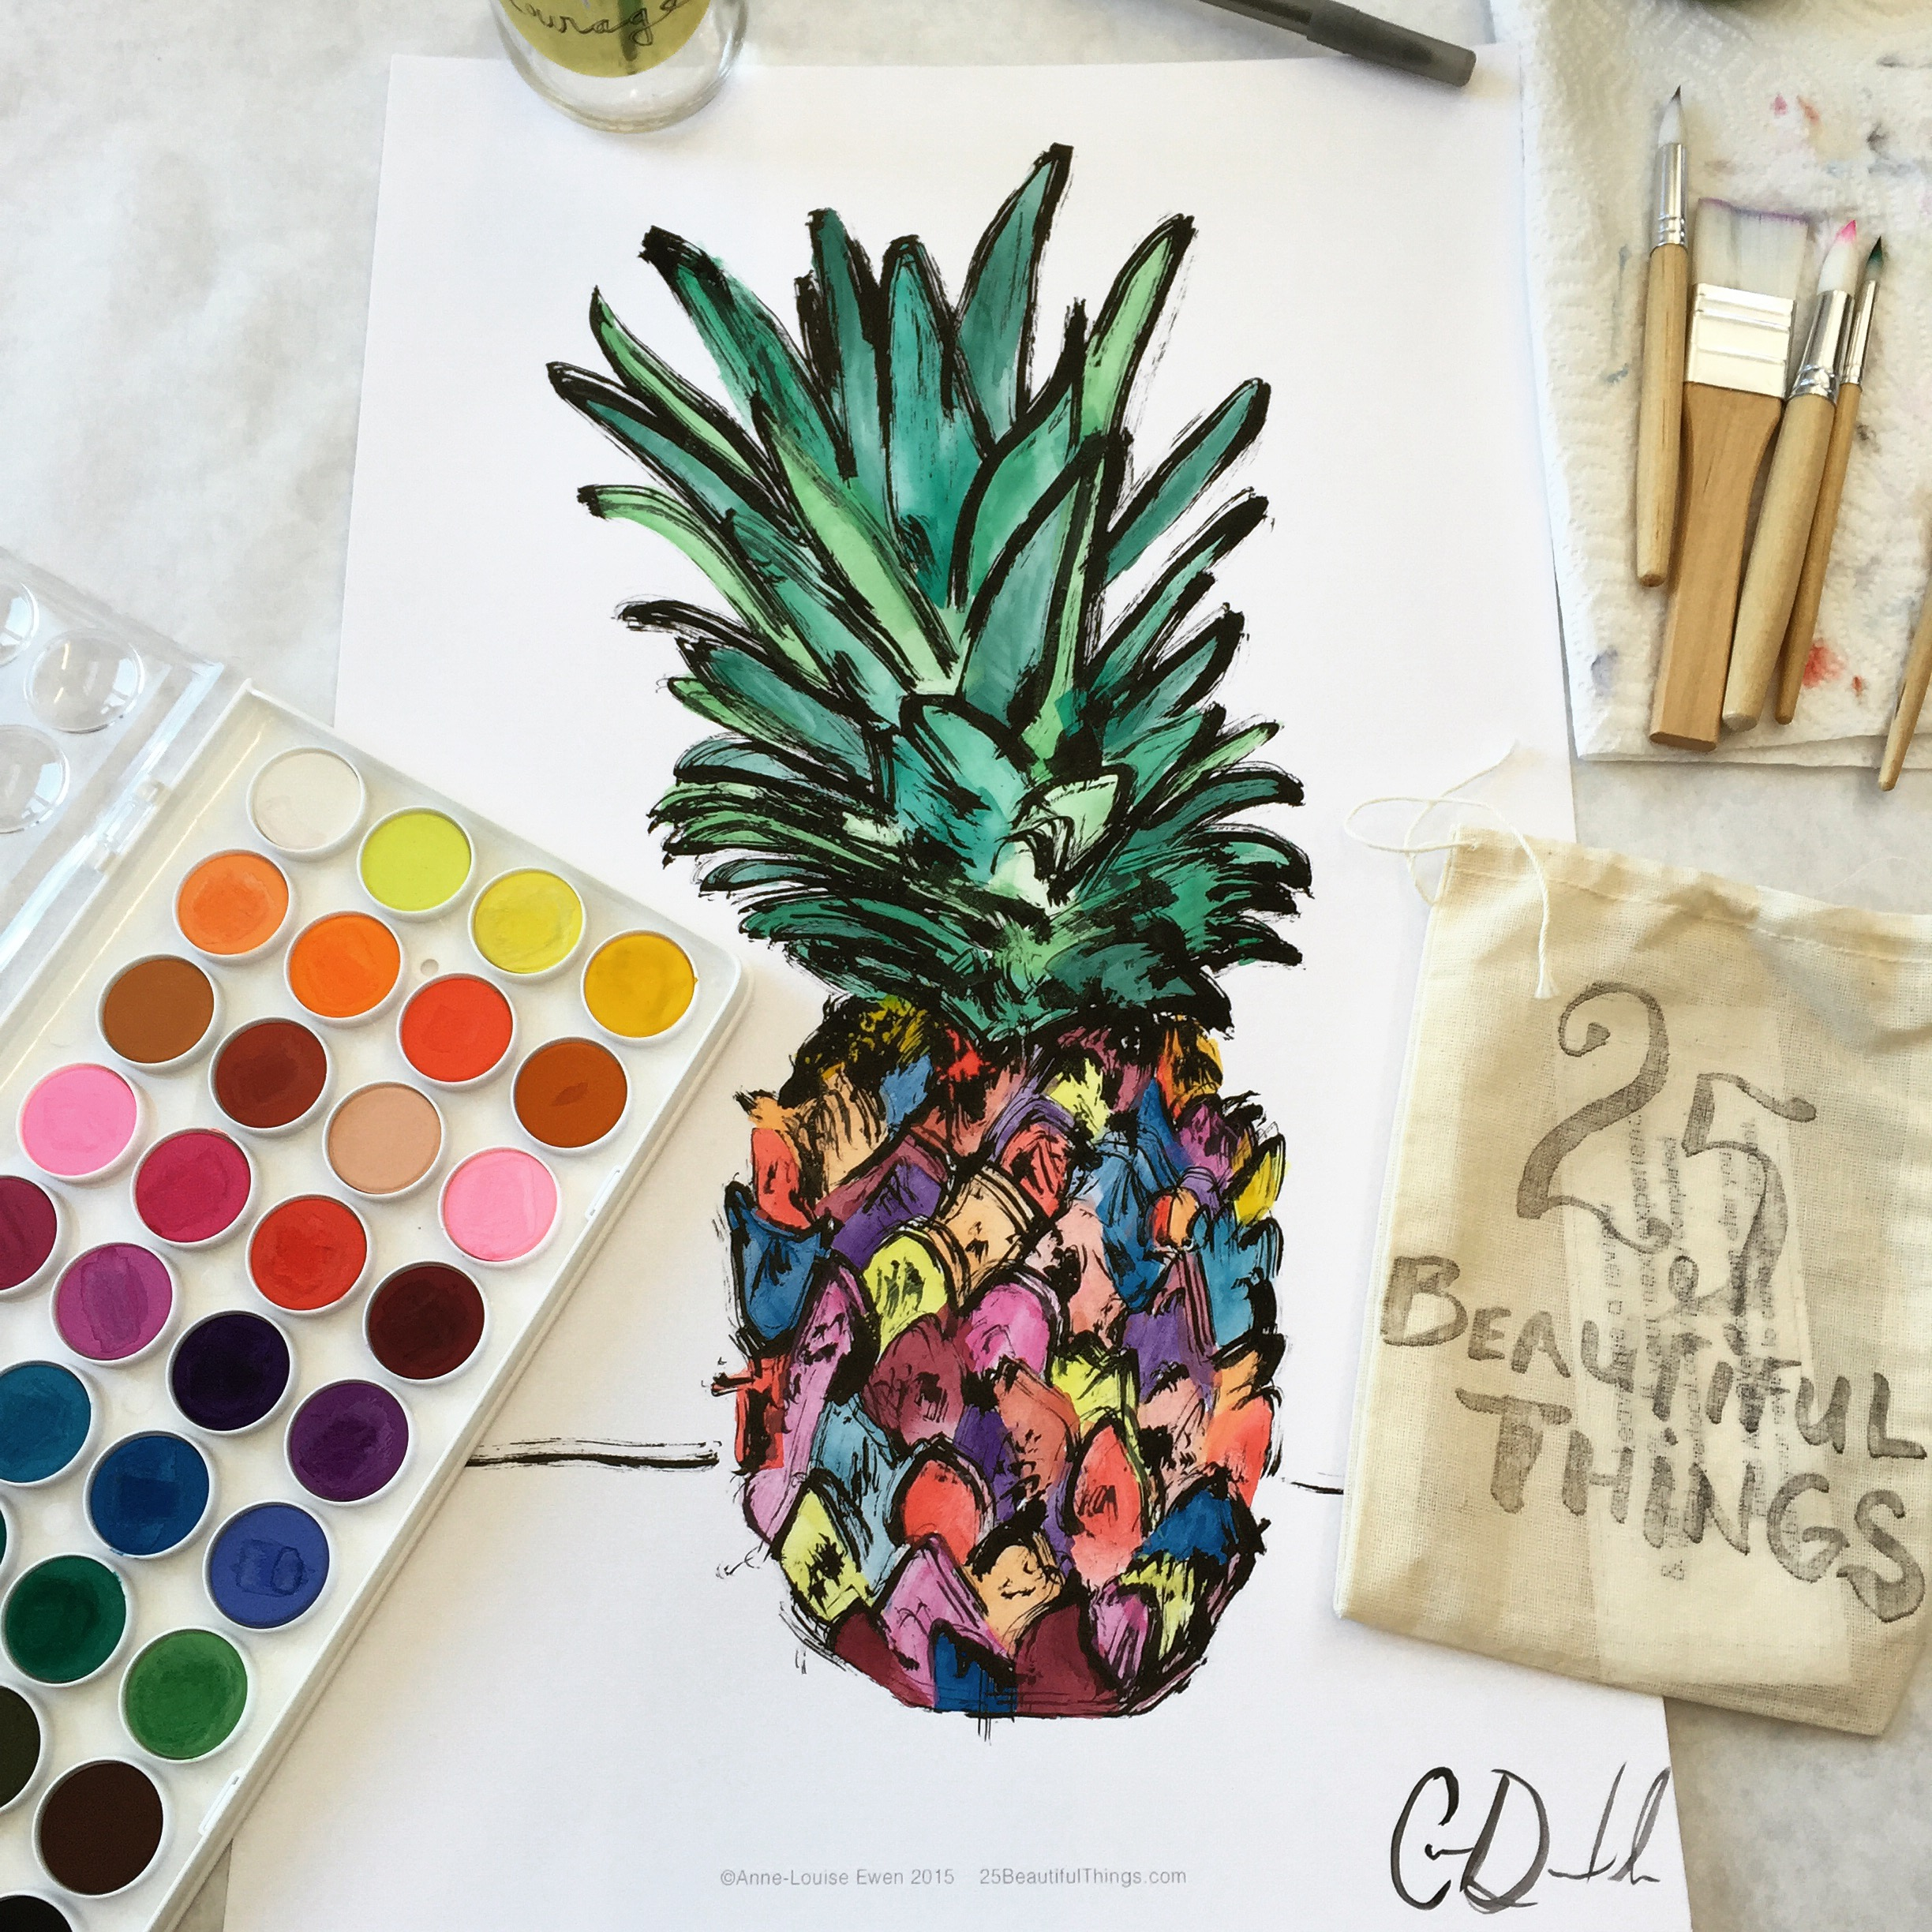 Creative mornings with Anne-Louise's 25 Beautiful Things watercolor book!